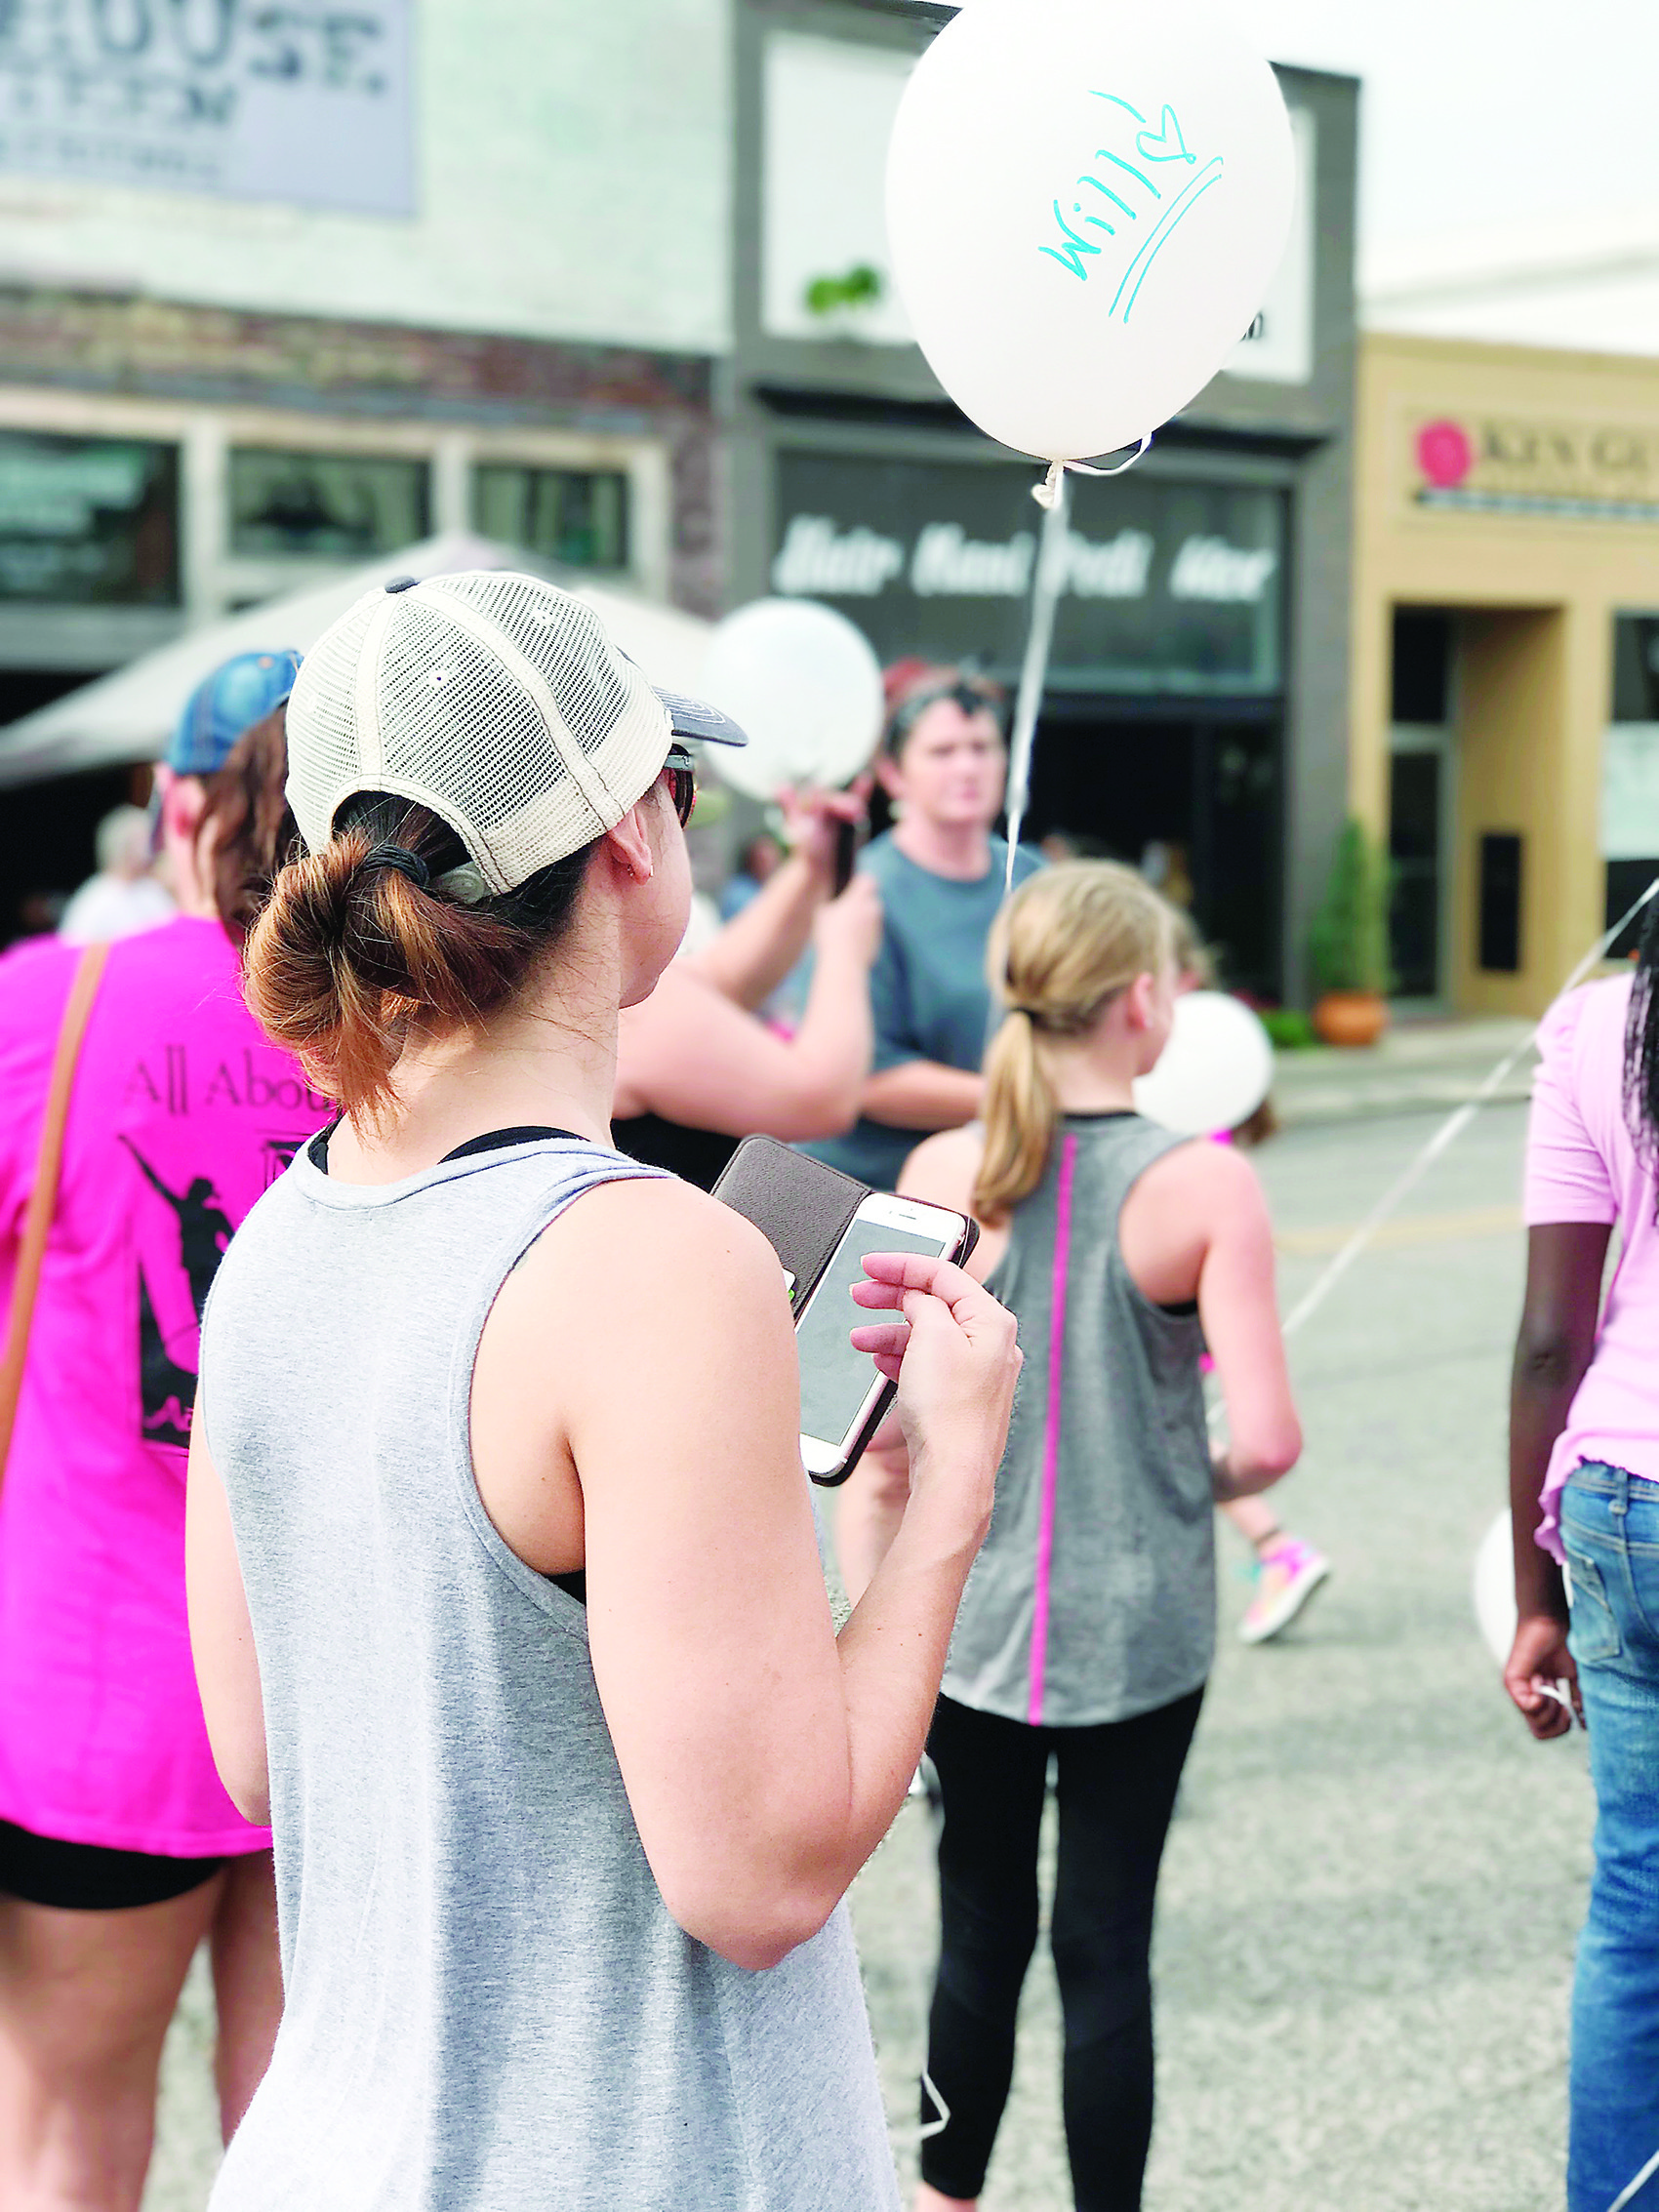 A participant in the 2017 Walk for Hope prepares to release a balloon in memory of a loved one lost to addiction.